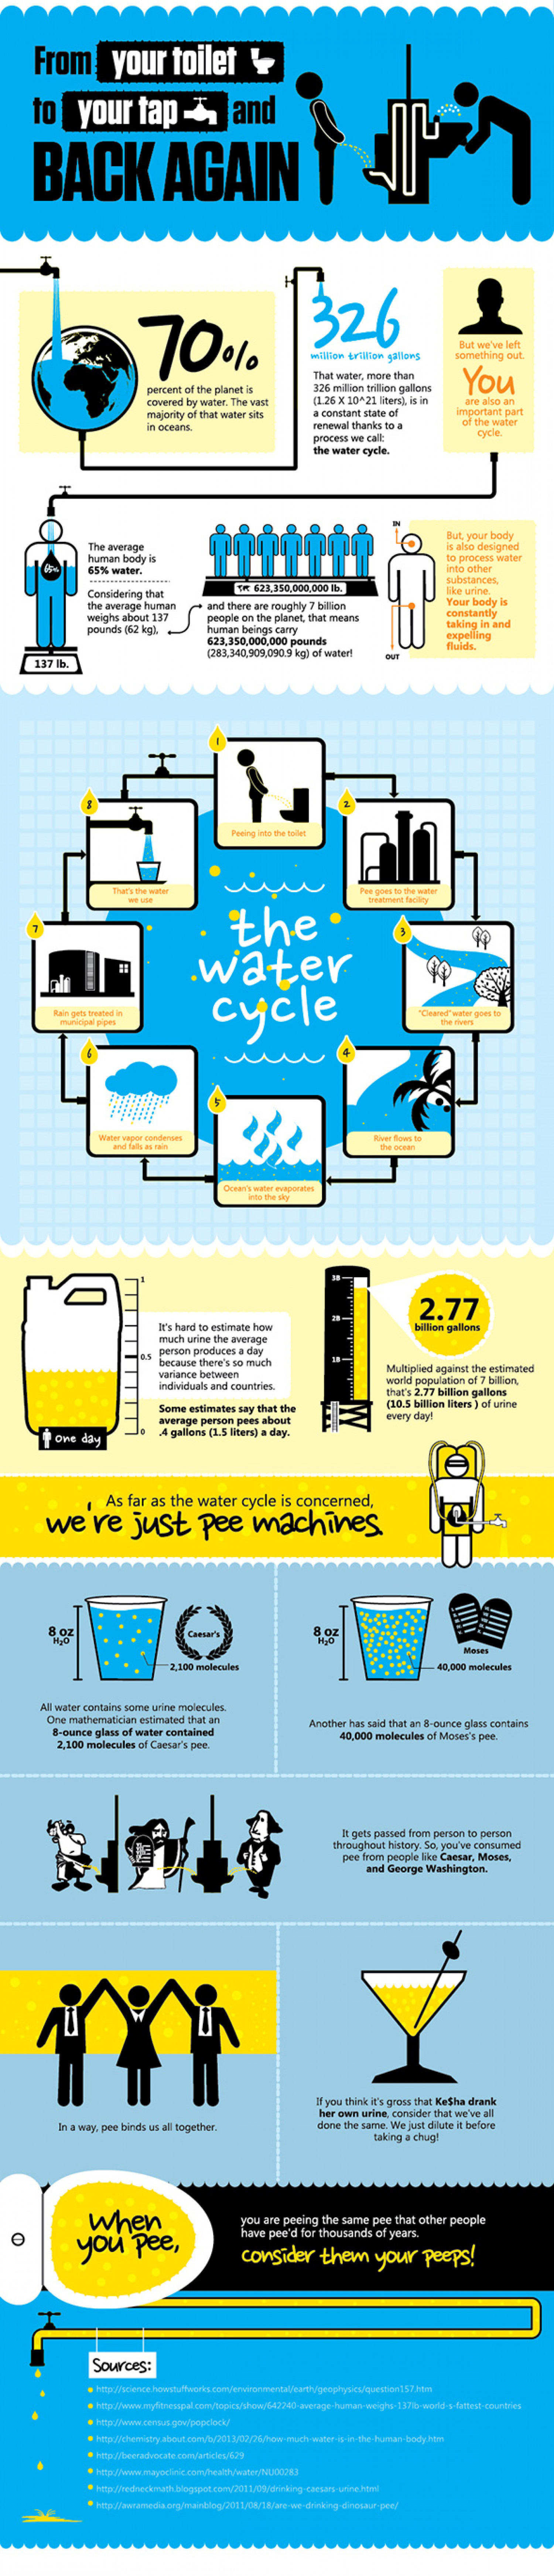 From Your Toilet to Your Tap and Back Again Infographic